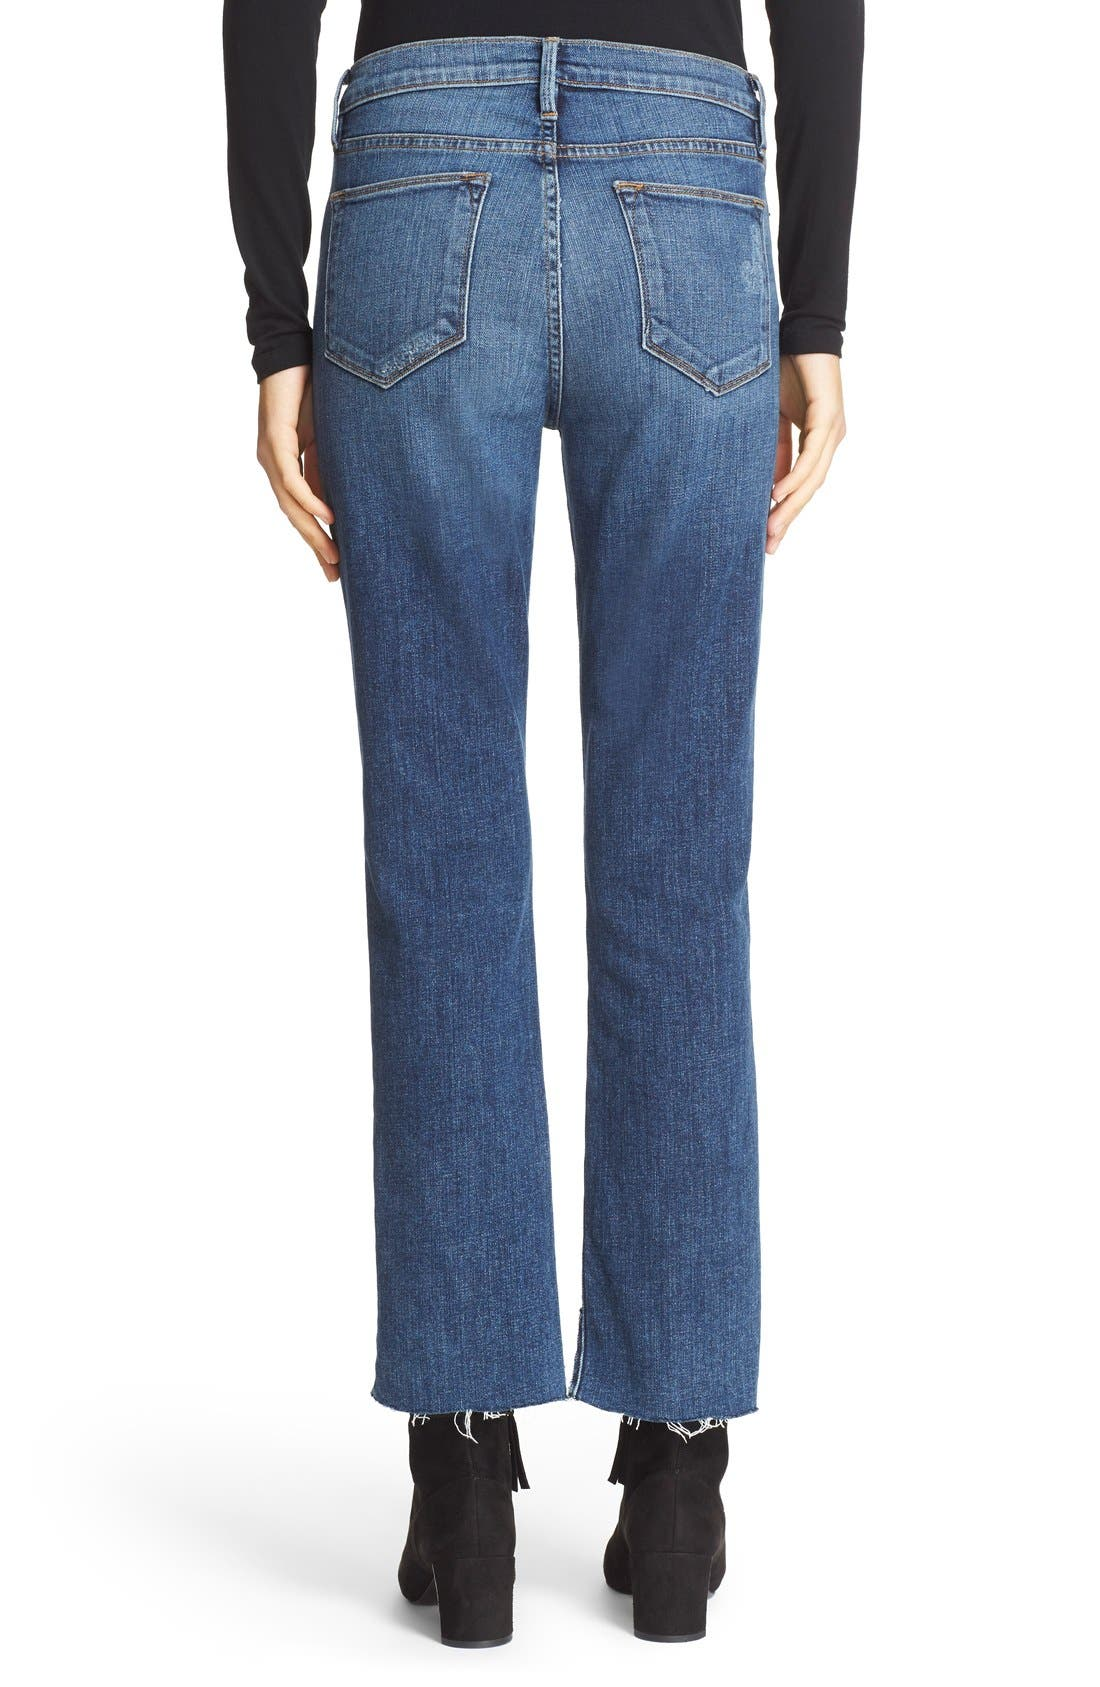 Alternate Image 3  - FRAME 'Le High Straight' High Rise Staggered Hem Jeans (Carroll) (Nordstrom Exclusive)